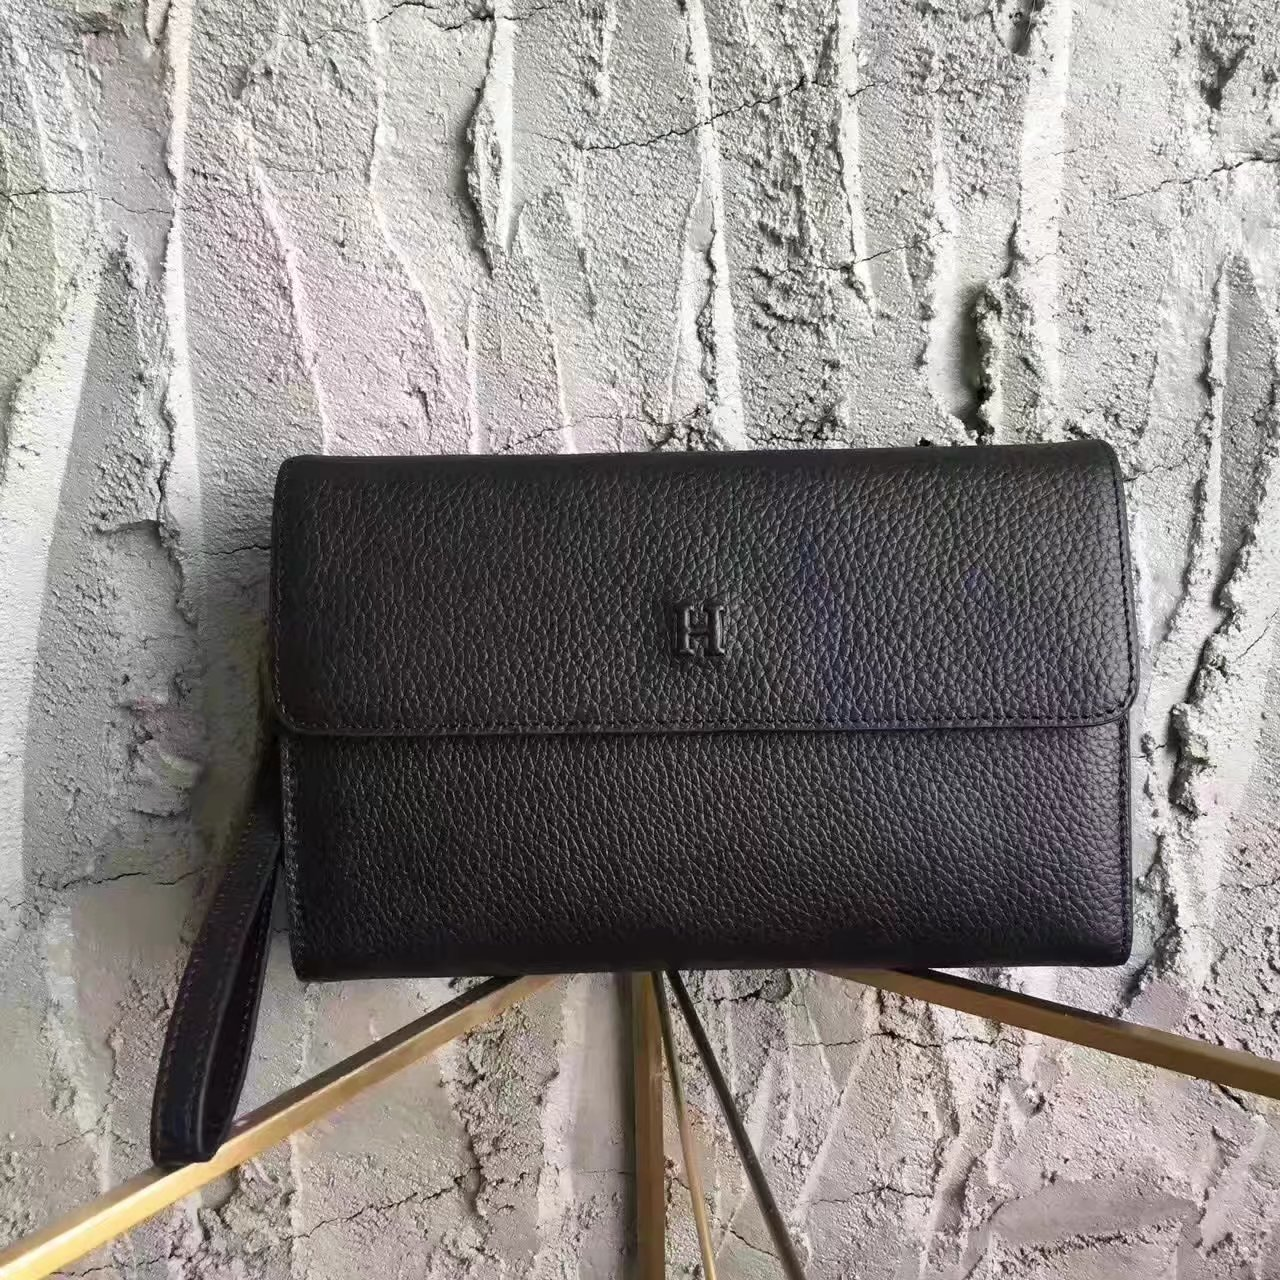 Hermes H003 Men Leather Clutch Bag in Black